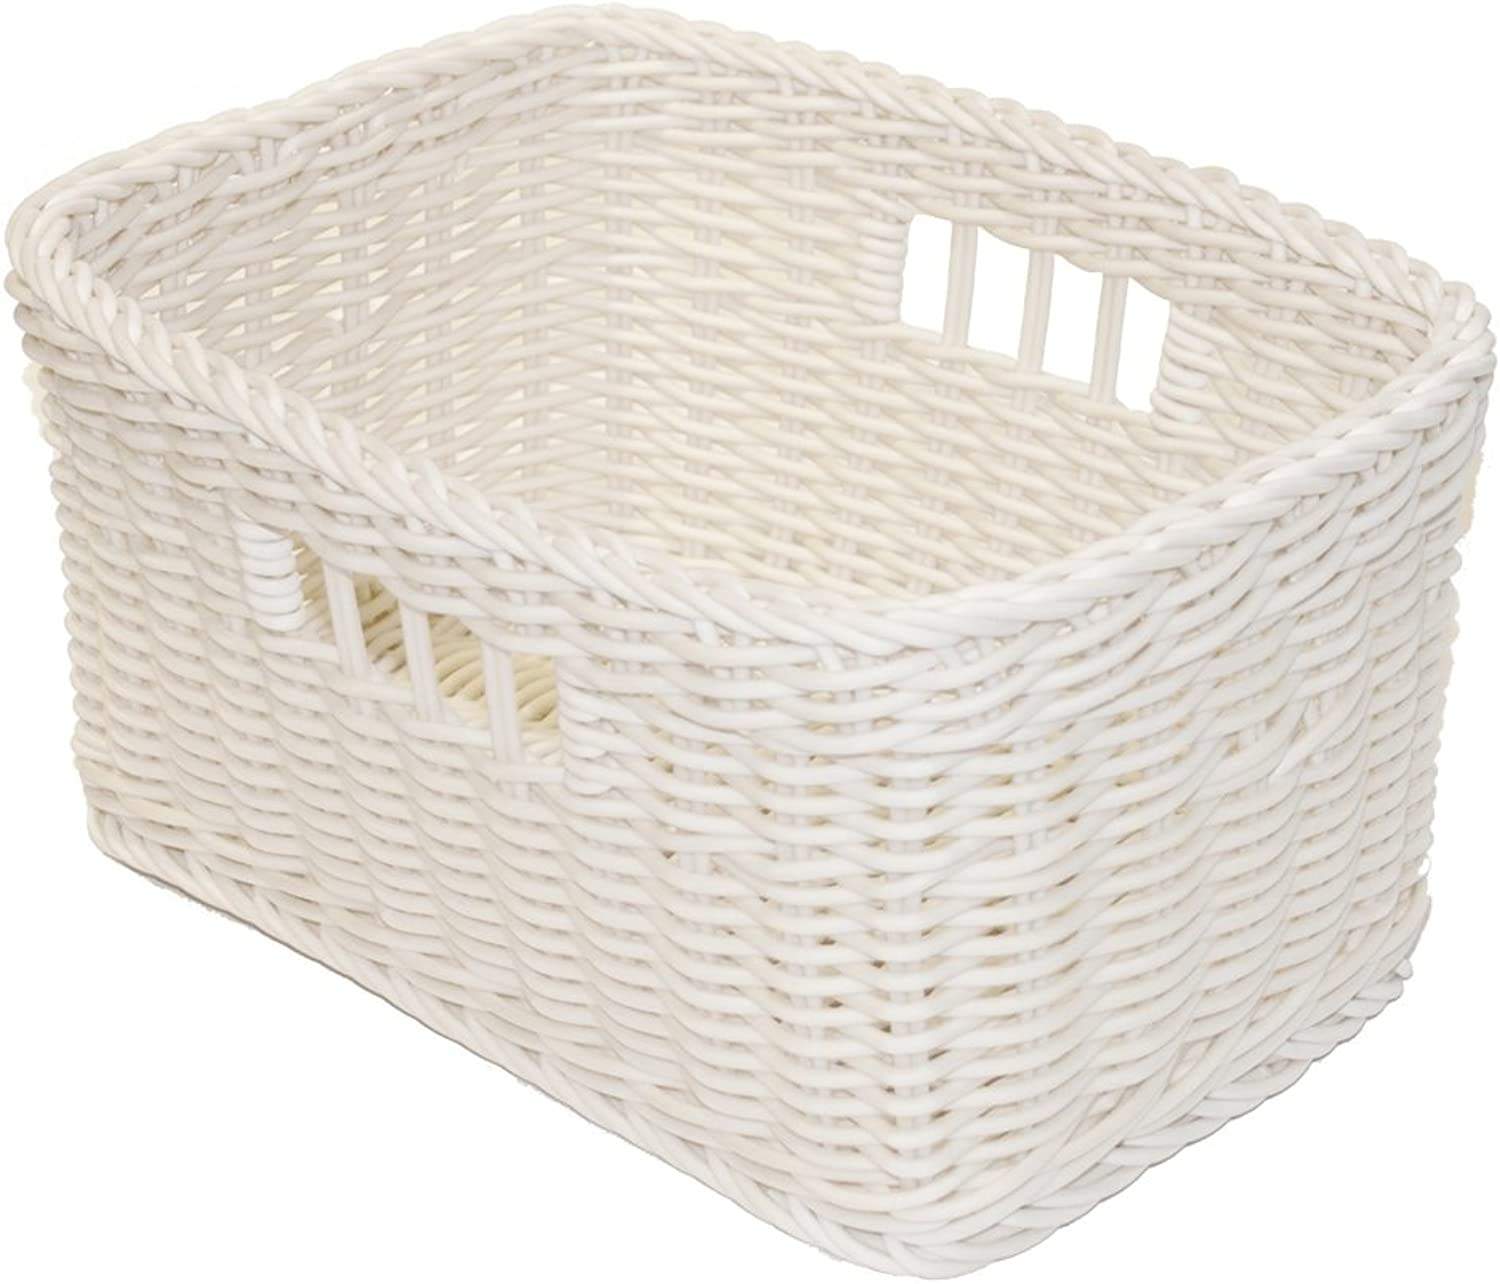 Saleen Rectangular Basket, Ivory, 30 x 20 x 15.5 cm